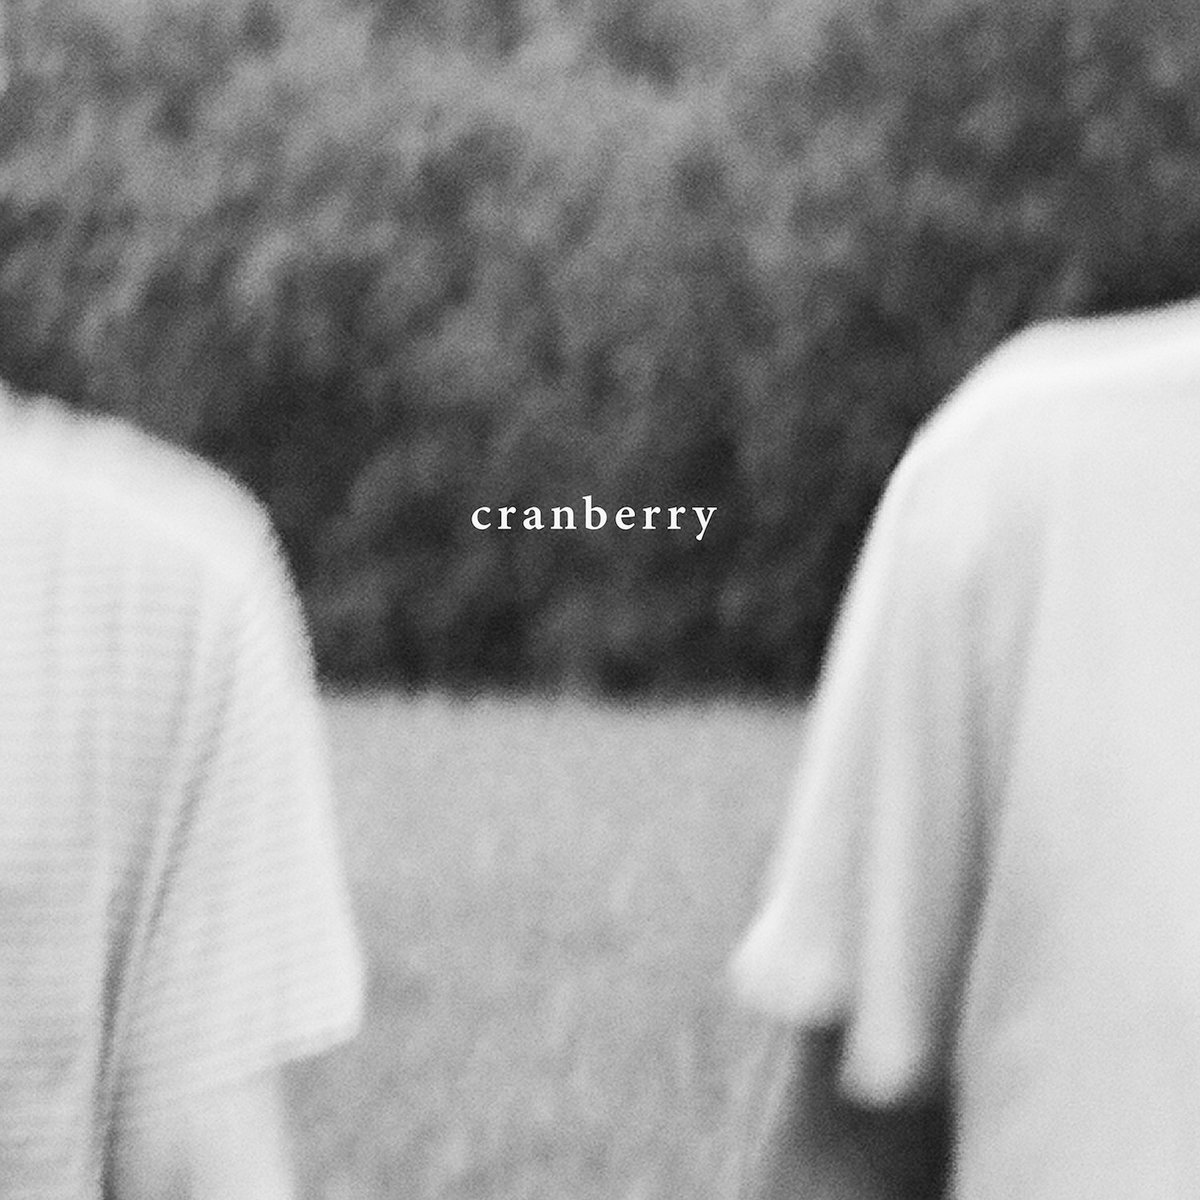 「hovvdy cranberry」の画像検索結果